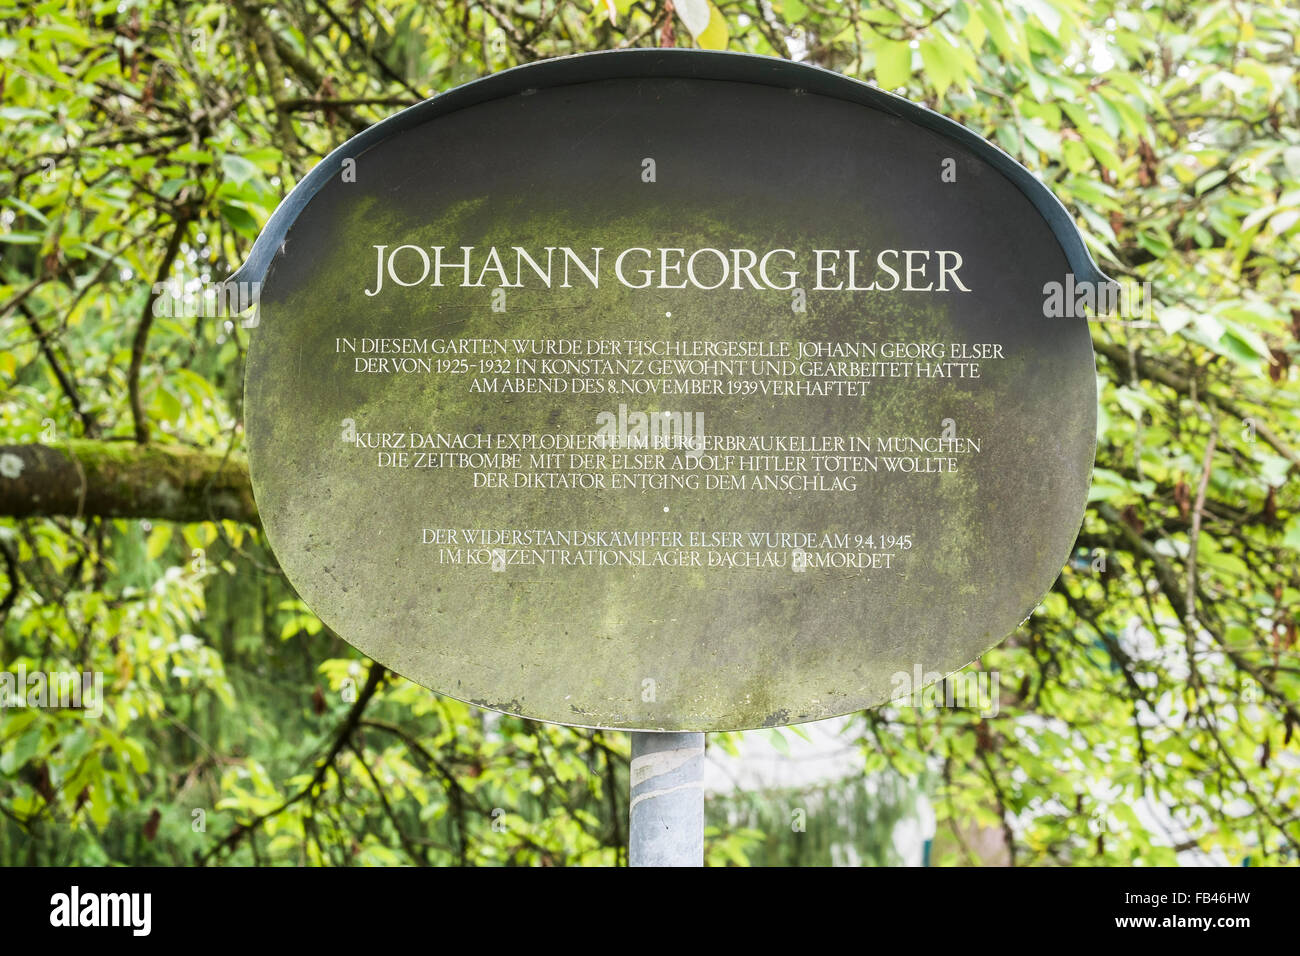 commemorative plaque for johann georg elser, at the place of his  detention, who planned and carried out an assasination - Stock Image